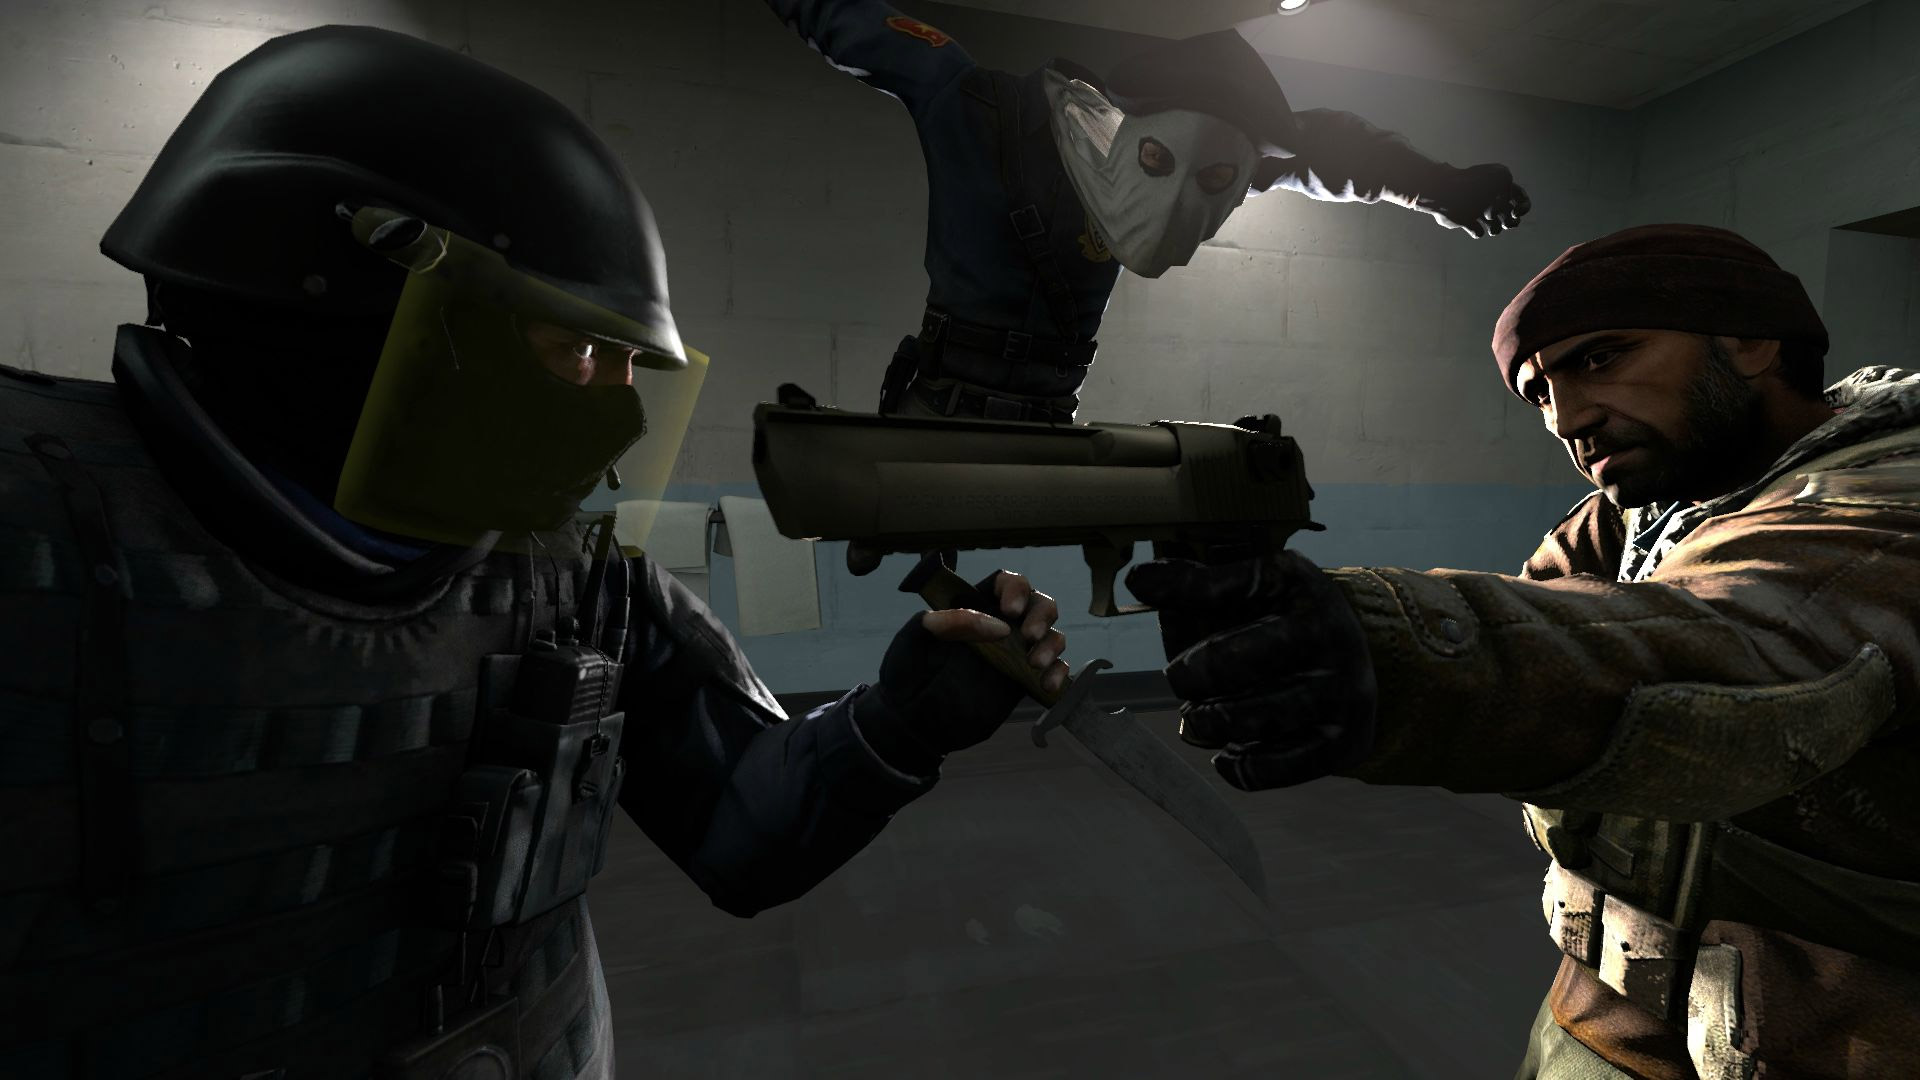 cs-go-counter-terrorist-defends